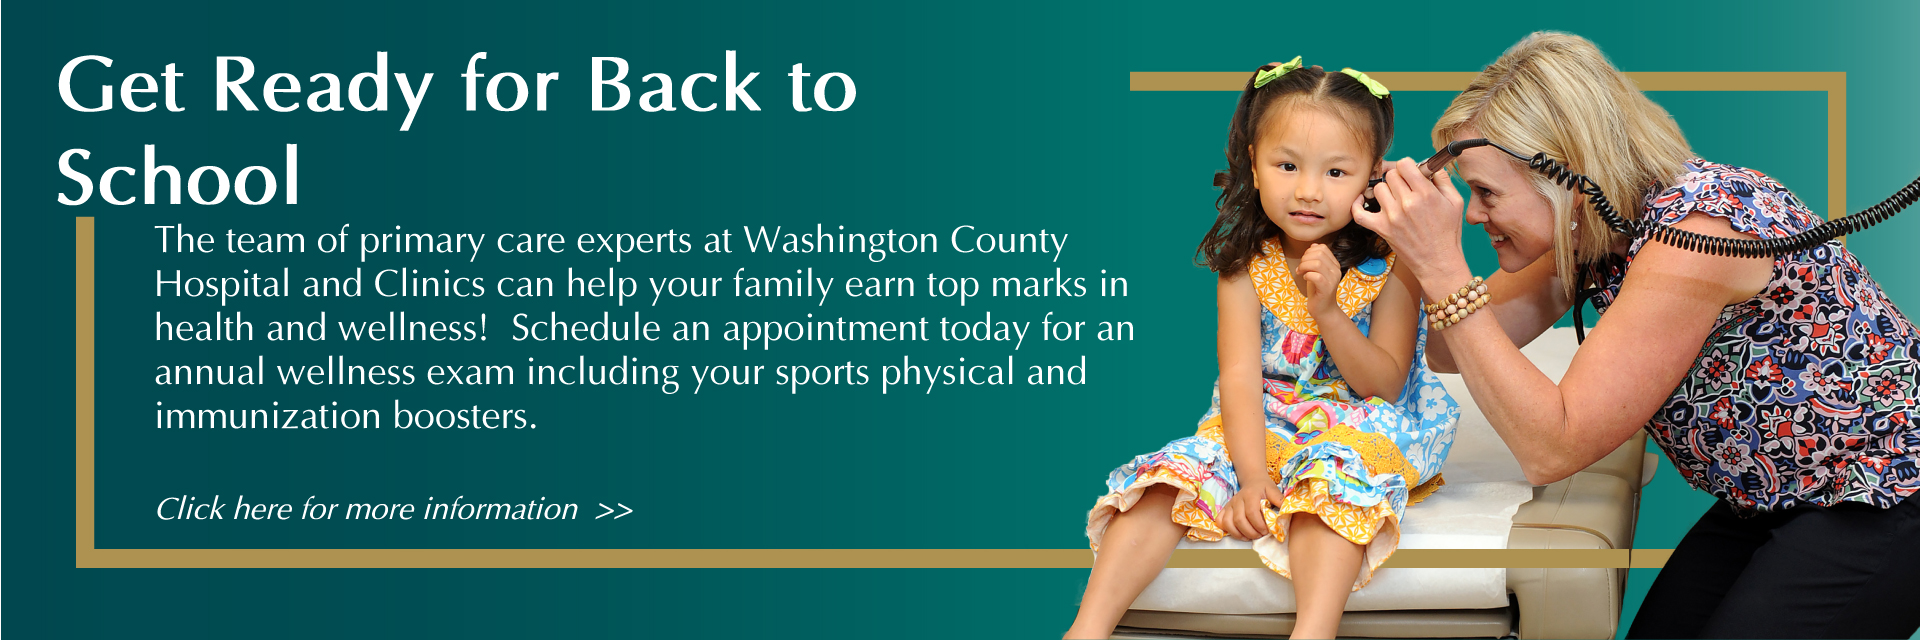 Get Ready for Back to School with an Annual Wellness Check